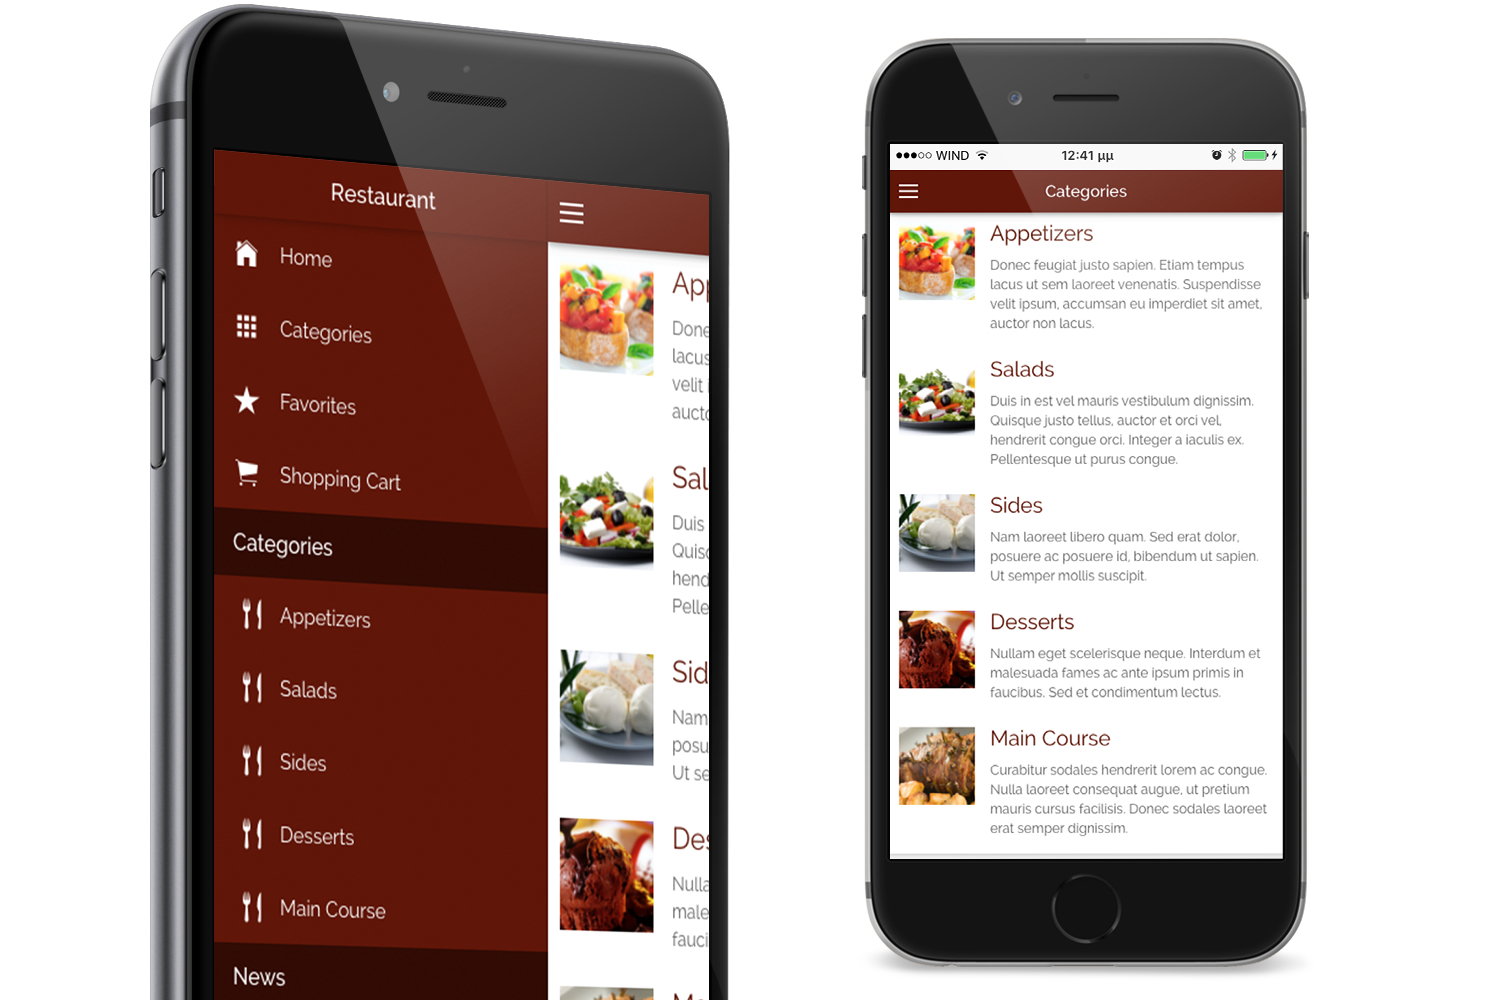 Restaurant-ionic-classy--full-application-with-firebase-backend